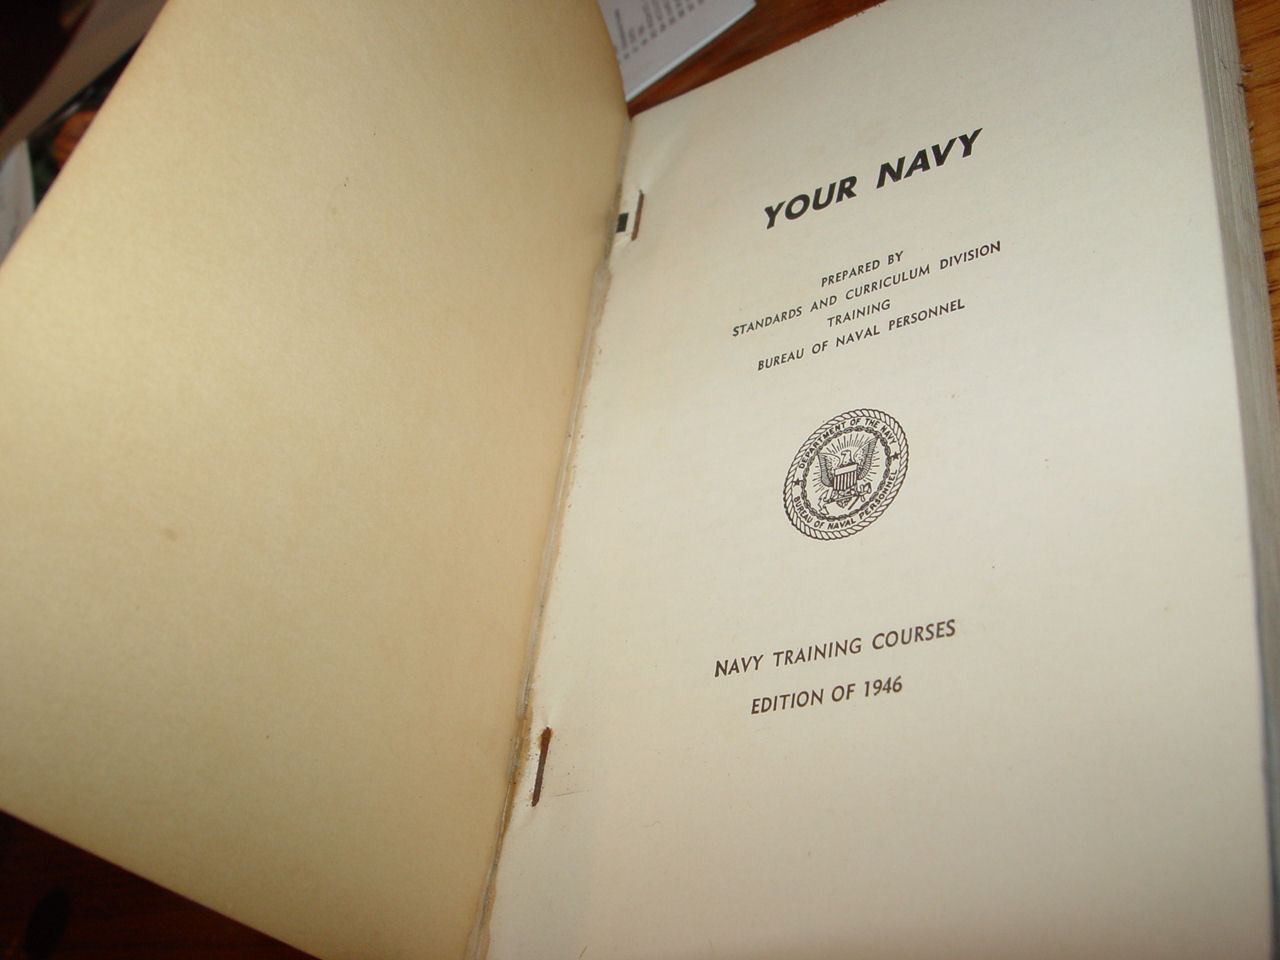 Your Navy:                                                 Navpers 10600, Navy                                                 Training Courses Edition                                                 of 1946 by Standards And                                                 Curriculum Division                                                 Training Bureau Of Naval                                                 Personnel